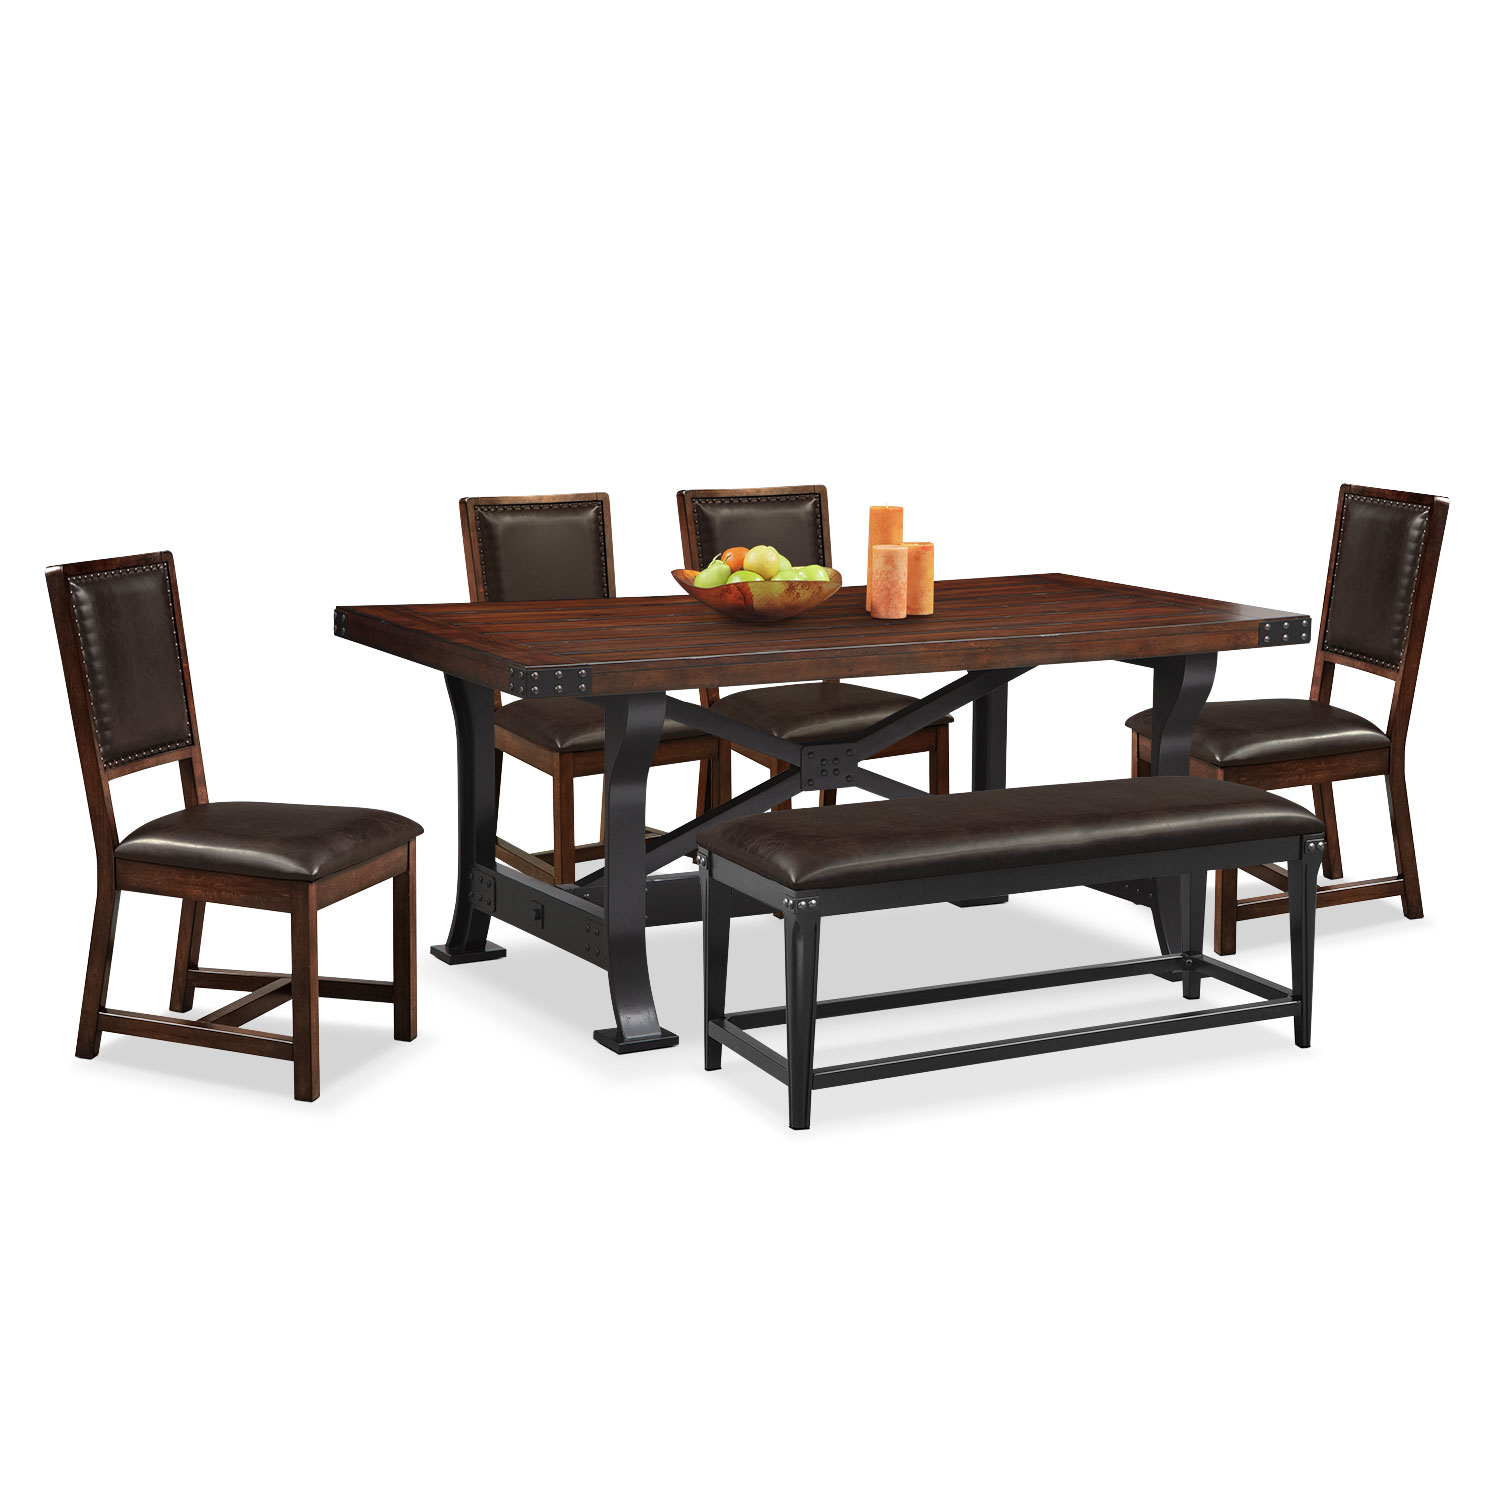 Dining Room Furniture   Newcastle Dining Table, 4 Side Chairs And Bench    Mahogany